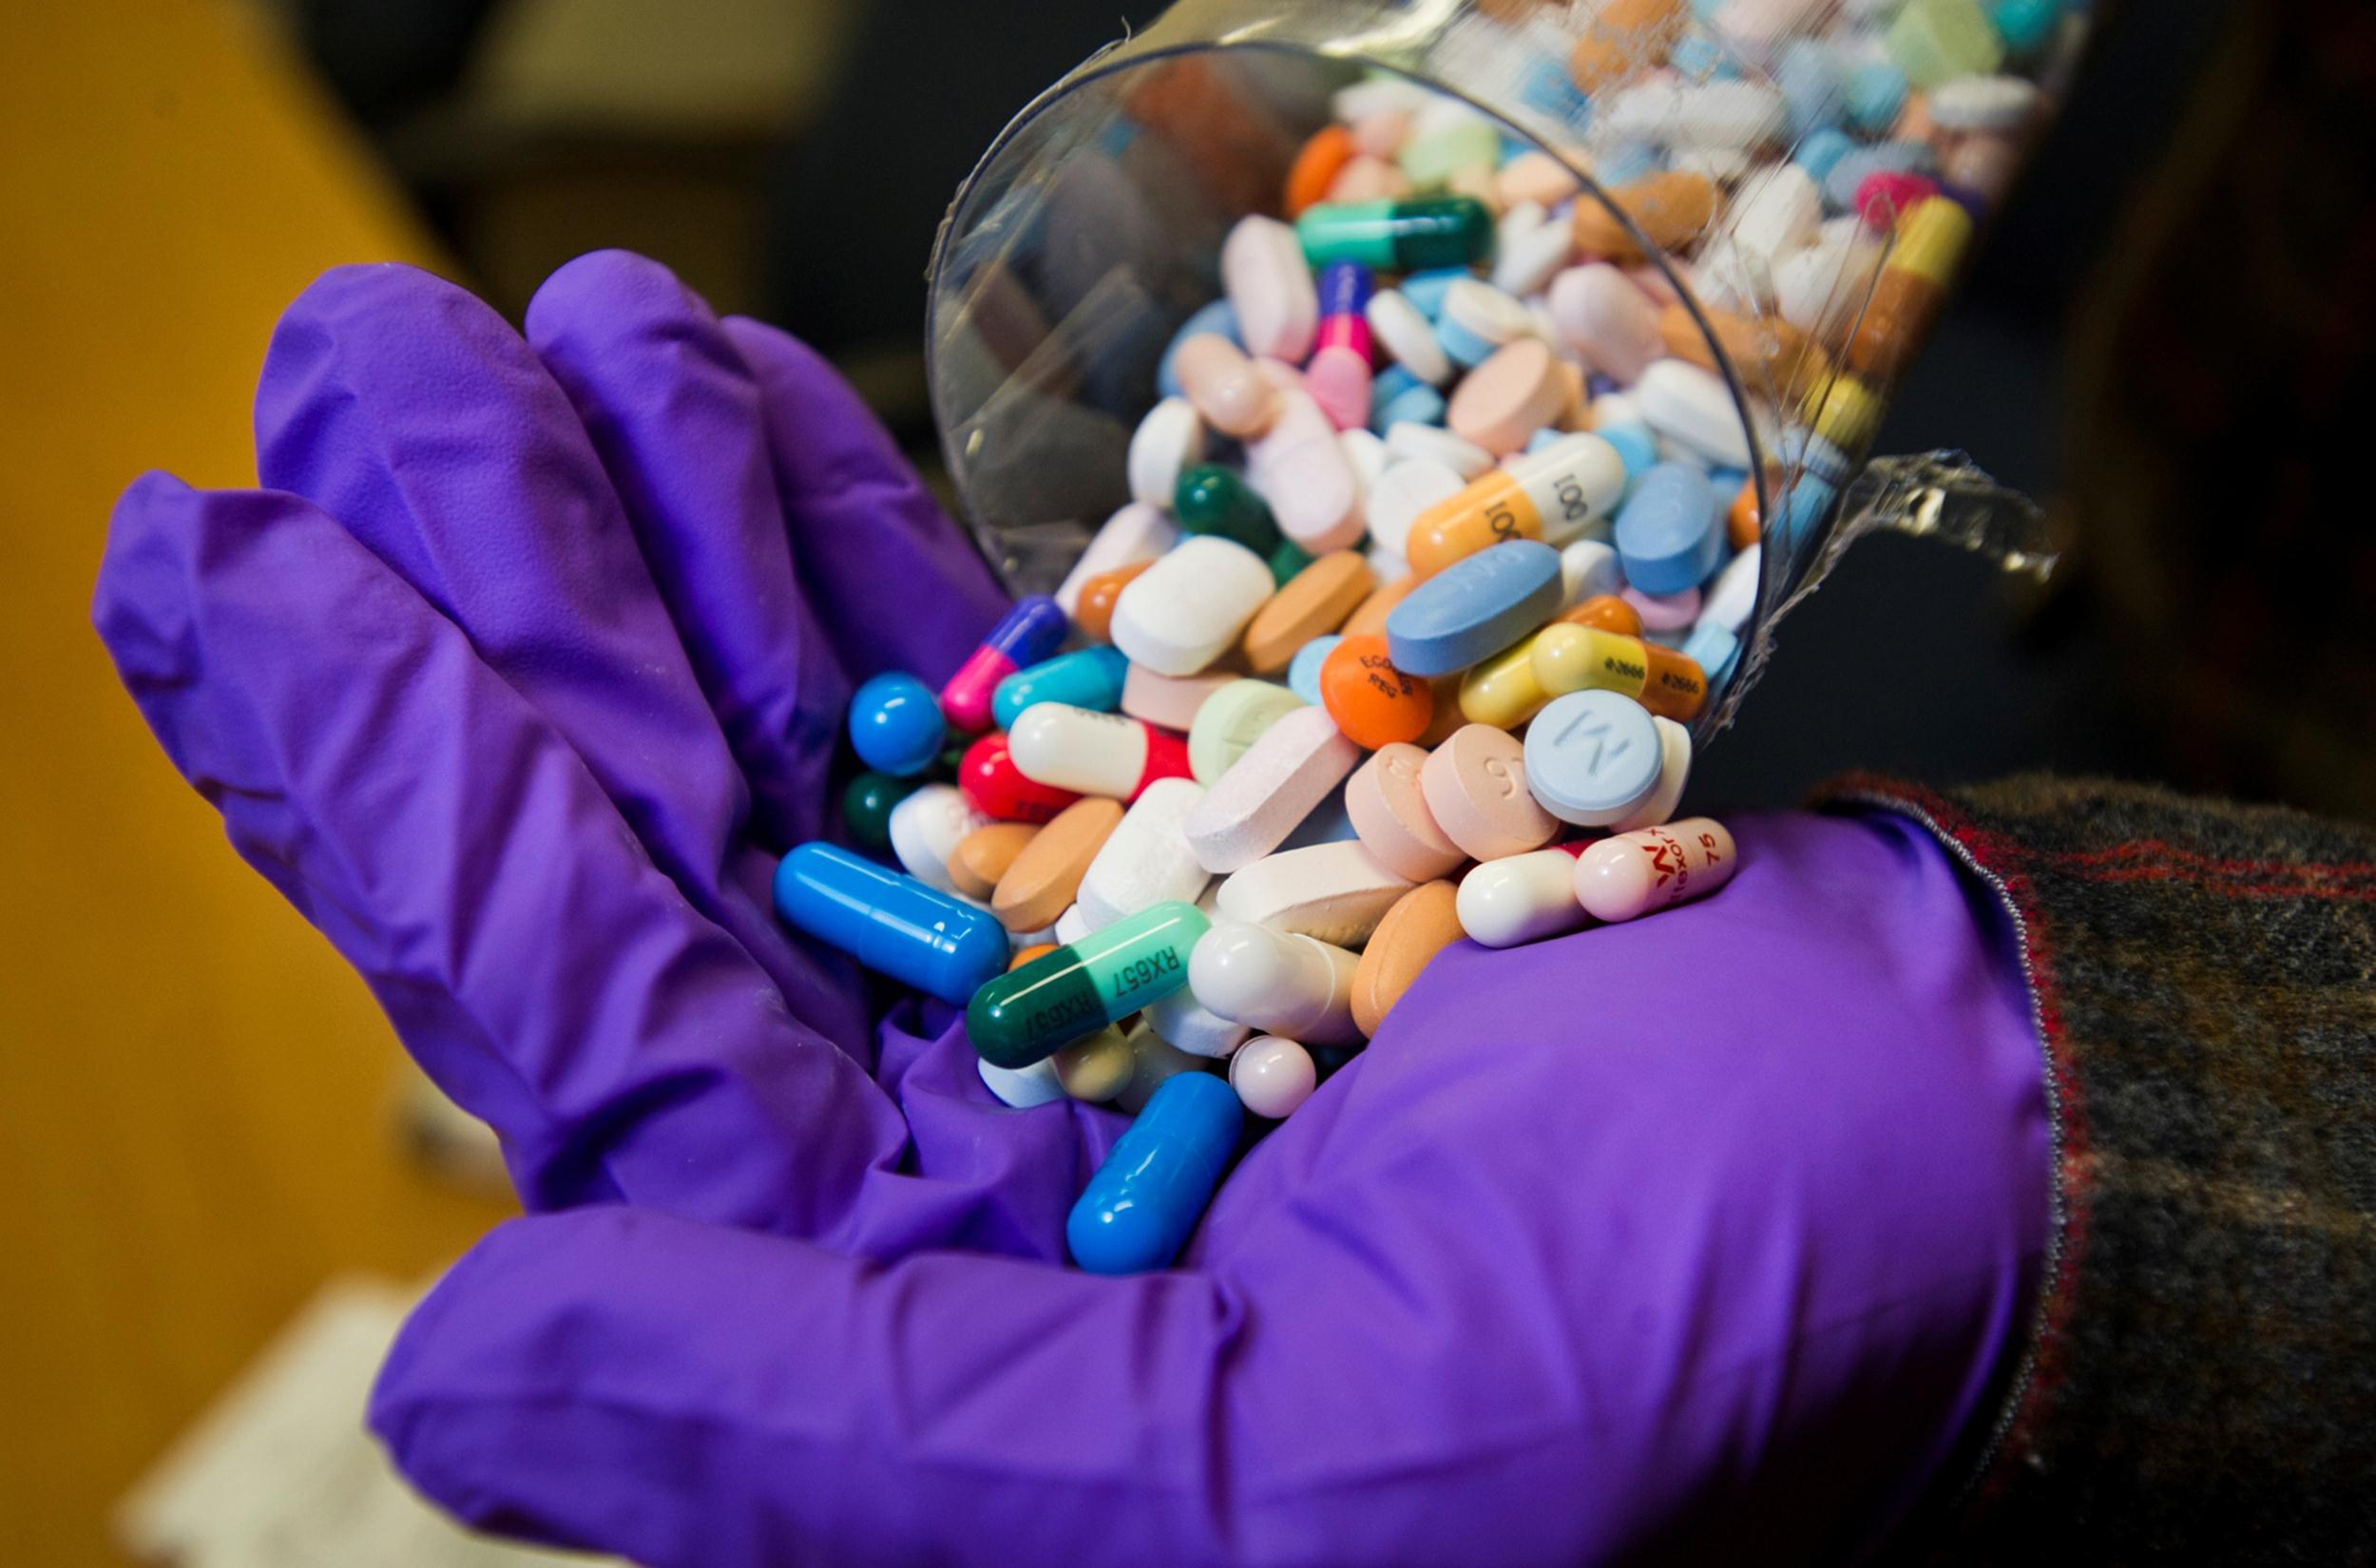 A police detective empties a vial of prescription drugs, mostly painkillers, at the station in Columbus, Ind.